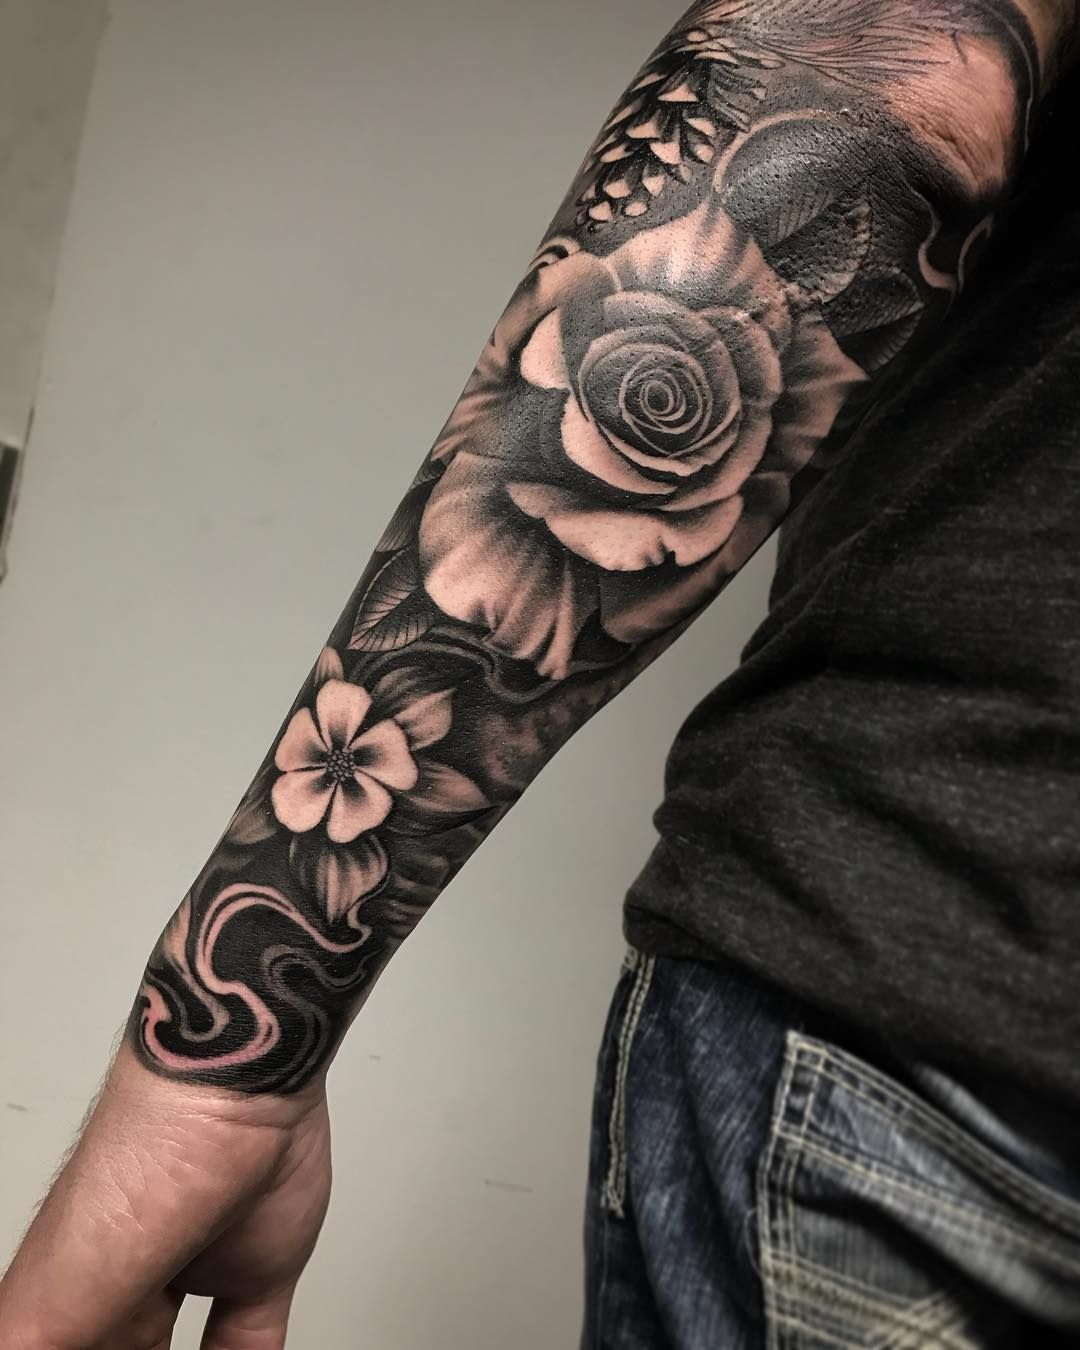 Floral Tattoos Can Also Be Masculine Fellas Don T Think Roses Are Just For The Ladies Artis Rose Tattoo Sleeve Rose Tattoos For Men Men Flower Tattoo